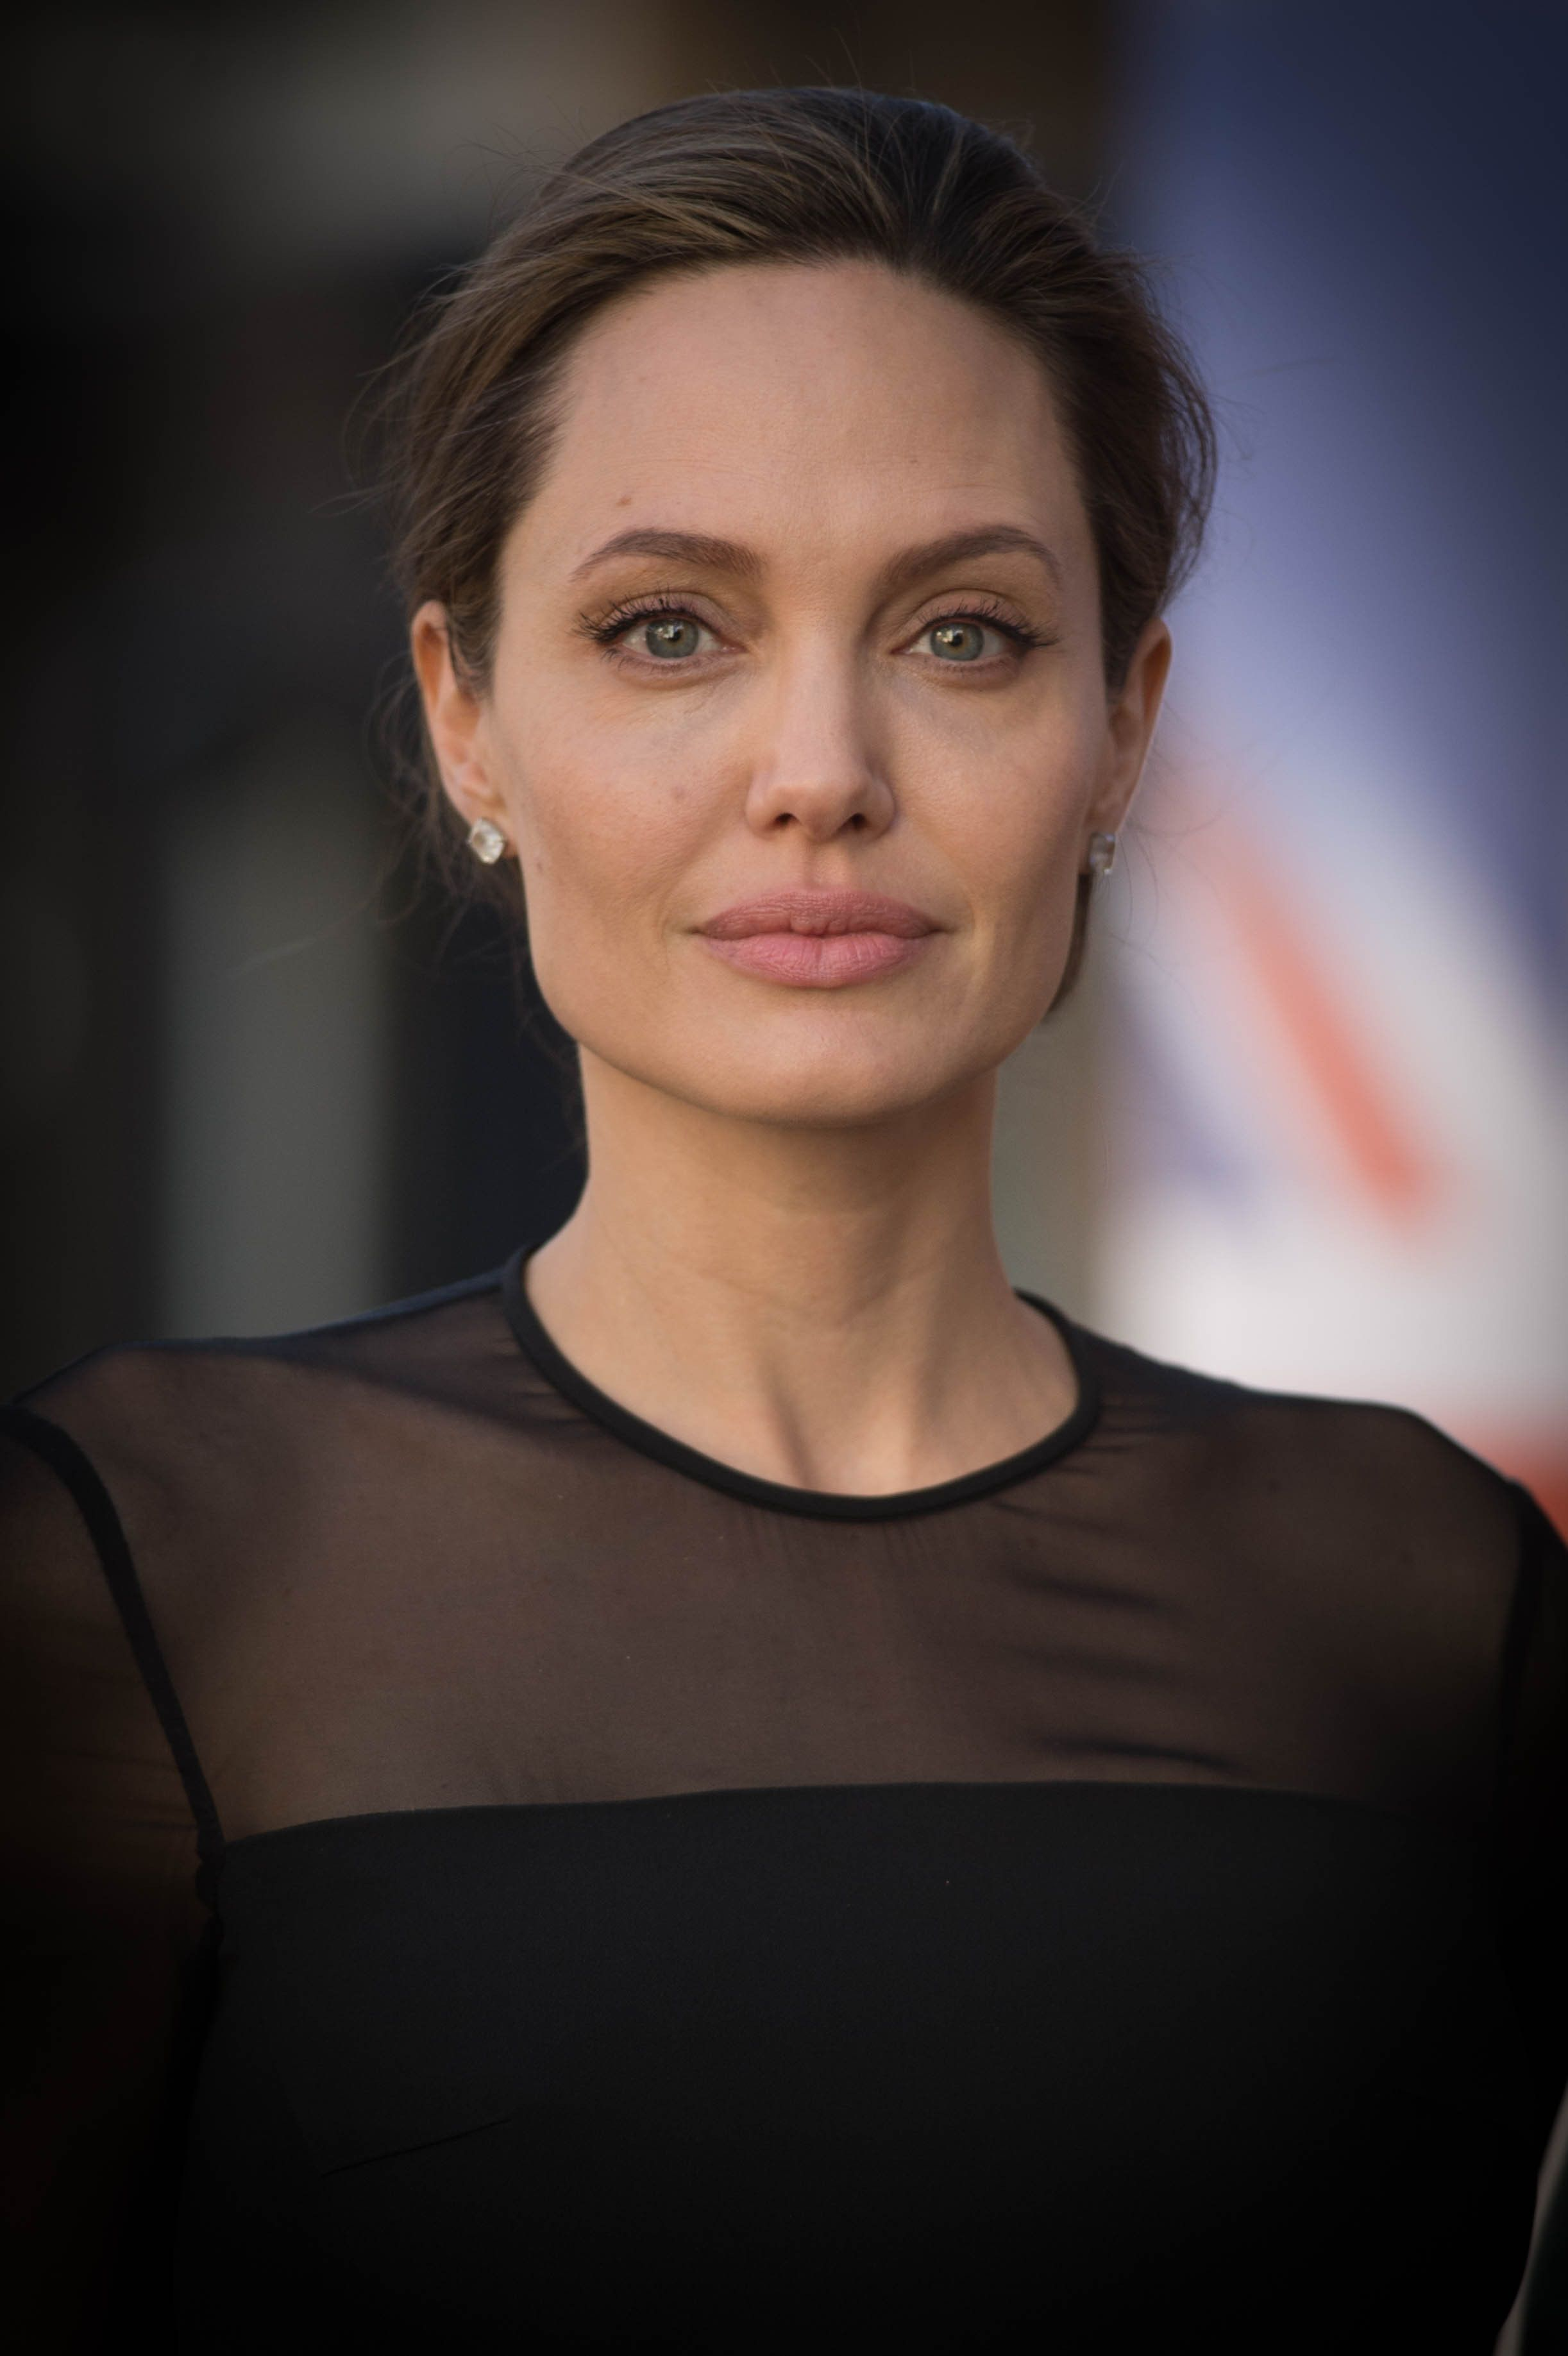 Angelina Jolie Refutes Claims She Exploited Cambodian Children During Casting Process Of New Film